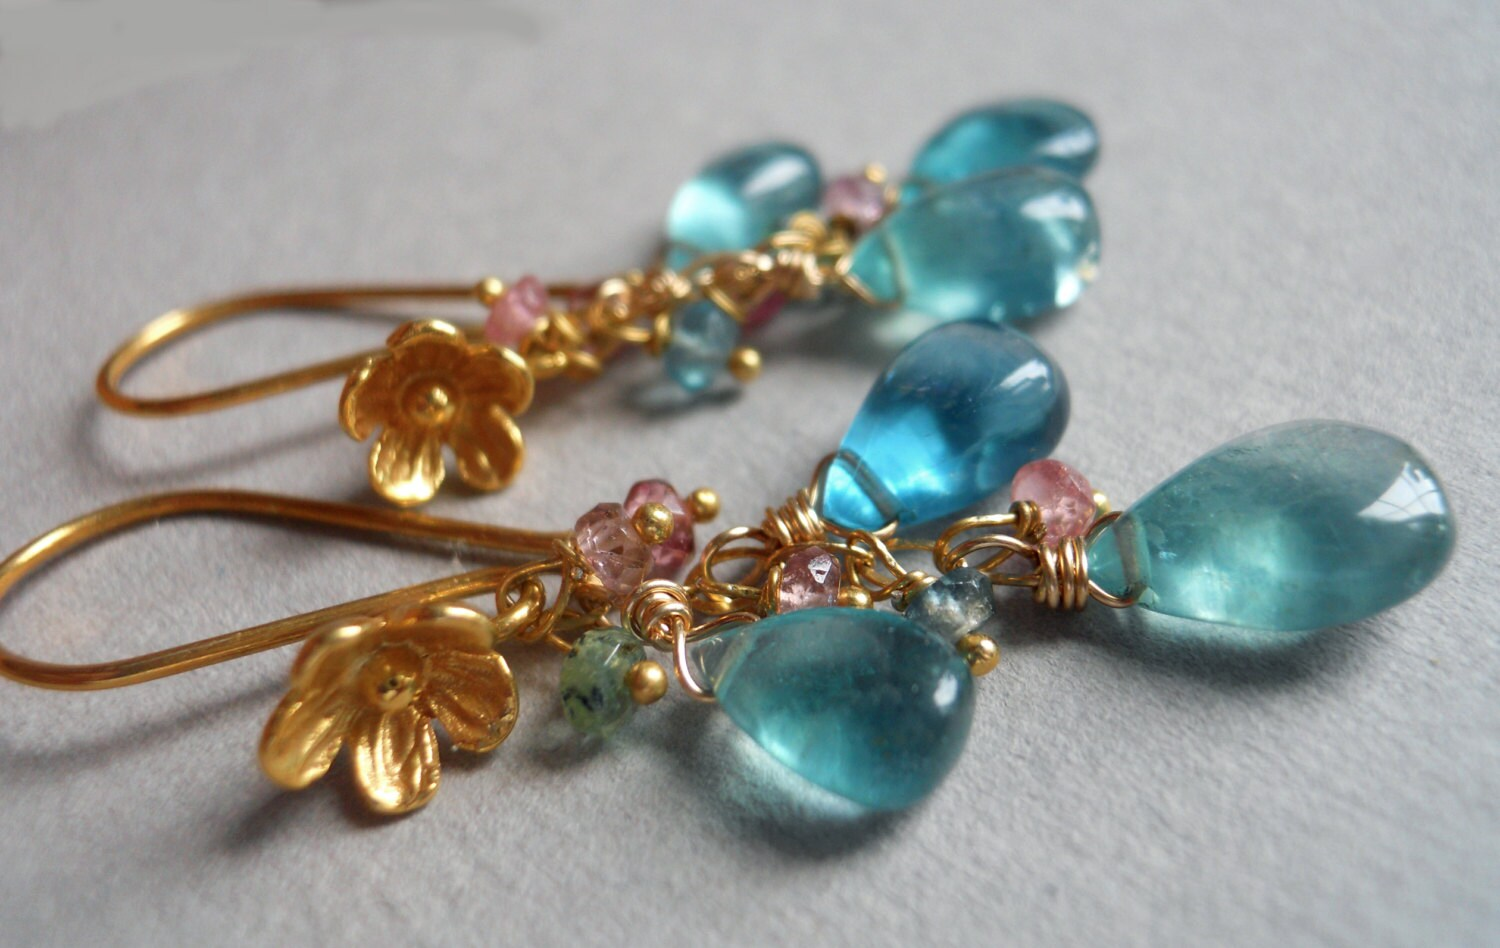 Flower Drops fluorite and tourmaline drop earrings - $72.00 USD